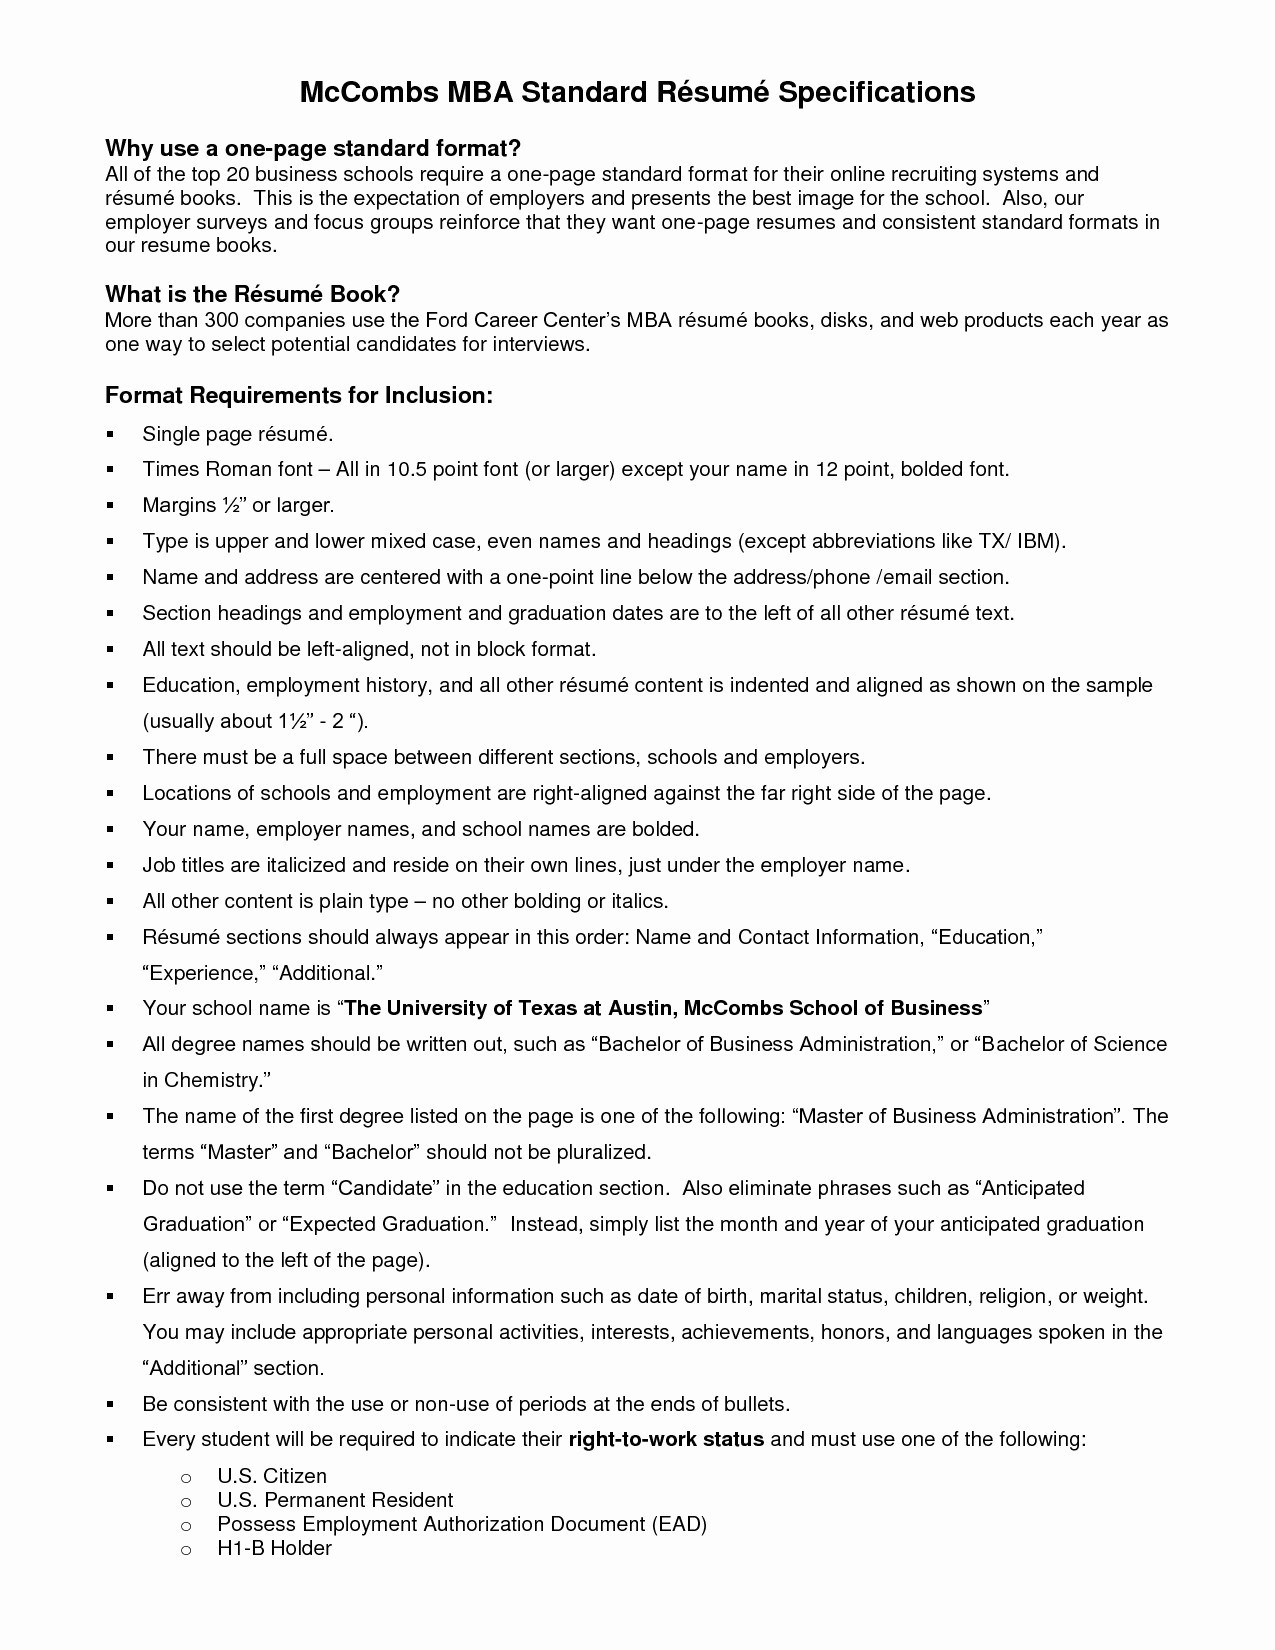 10 ut austin mccombs resume template collection